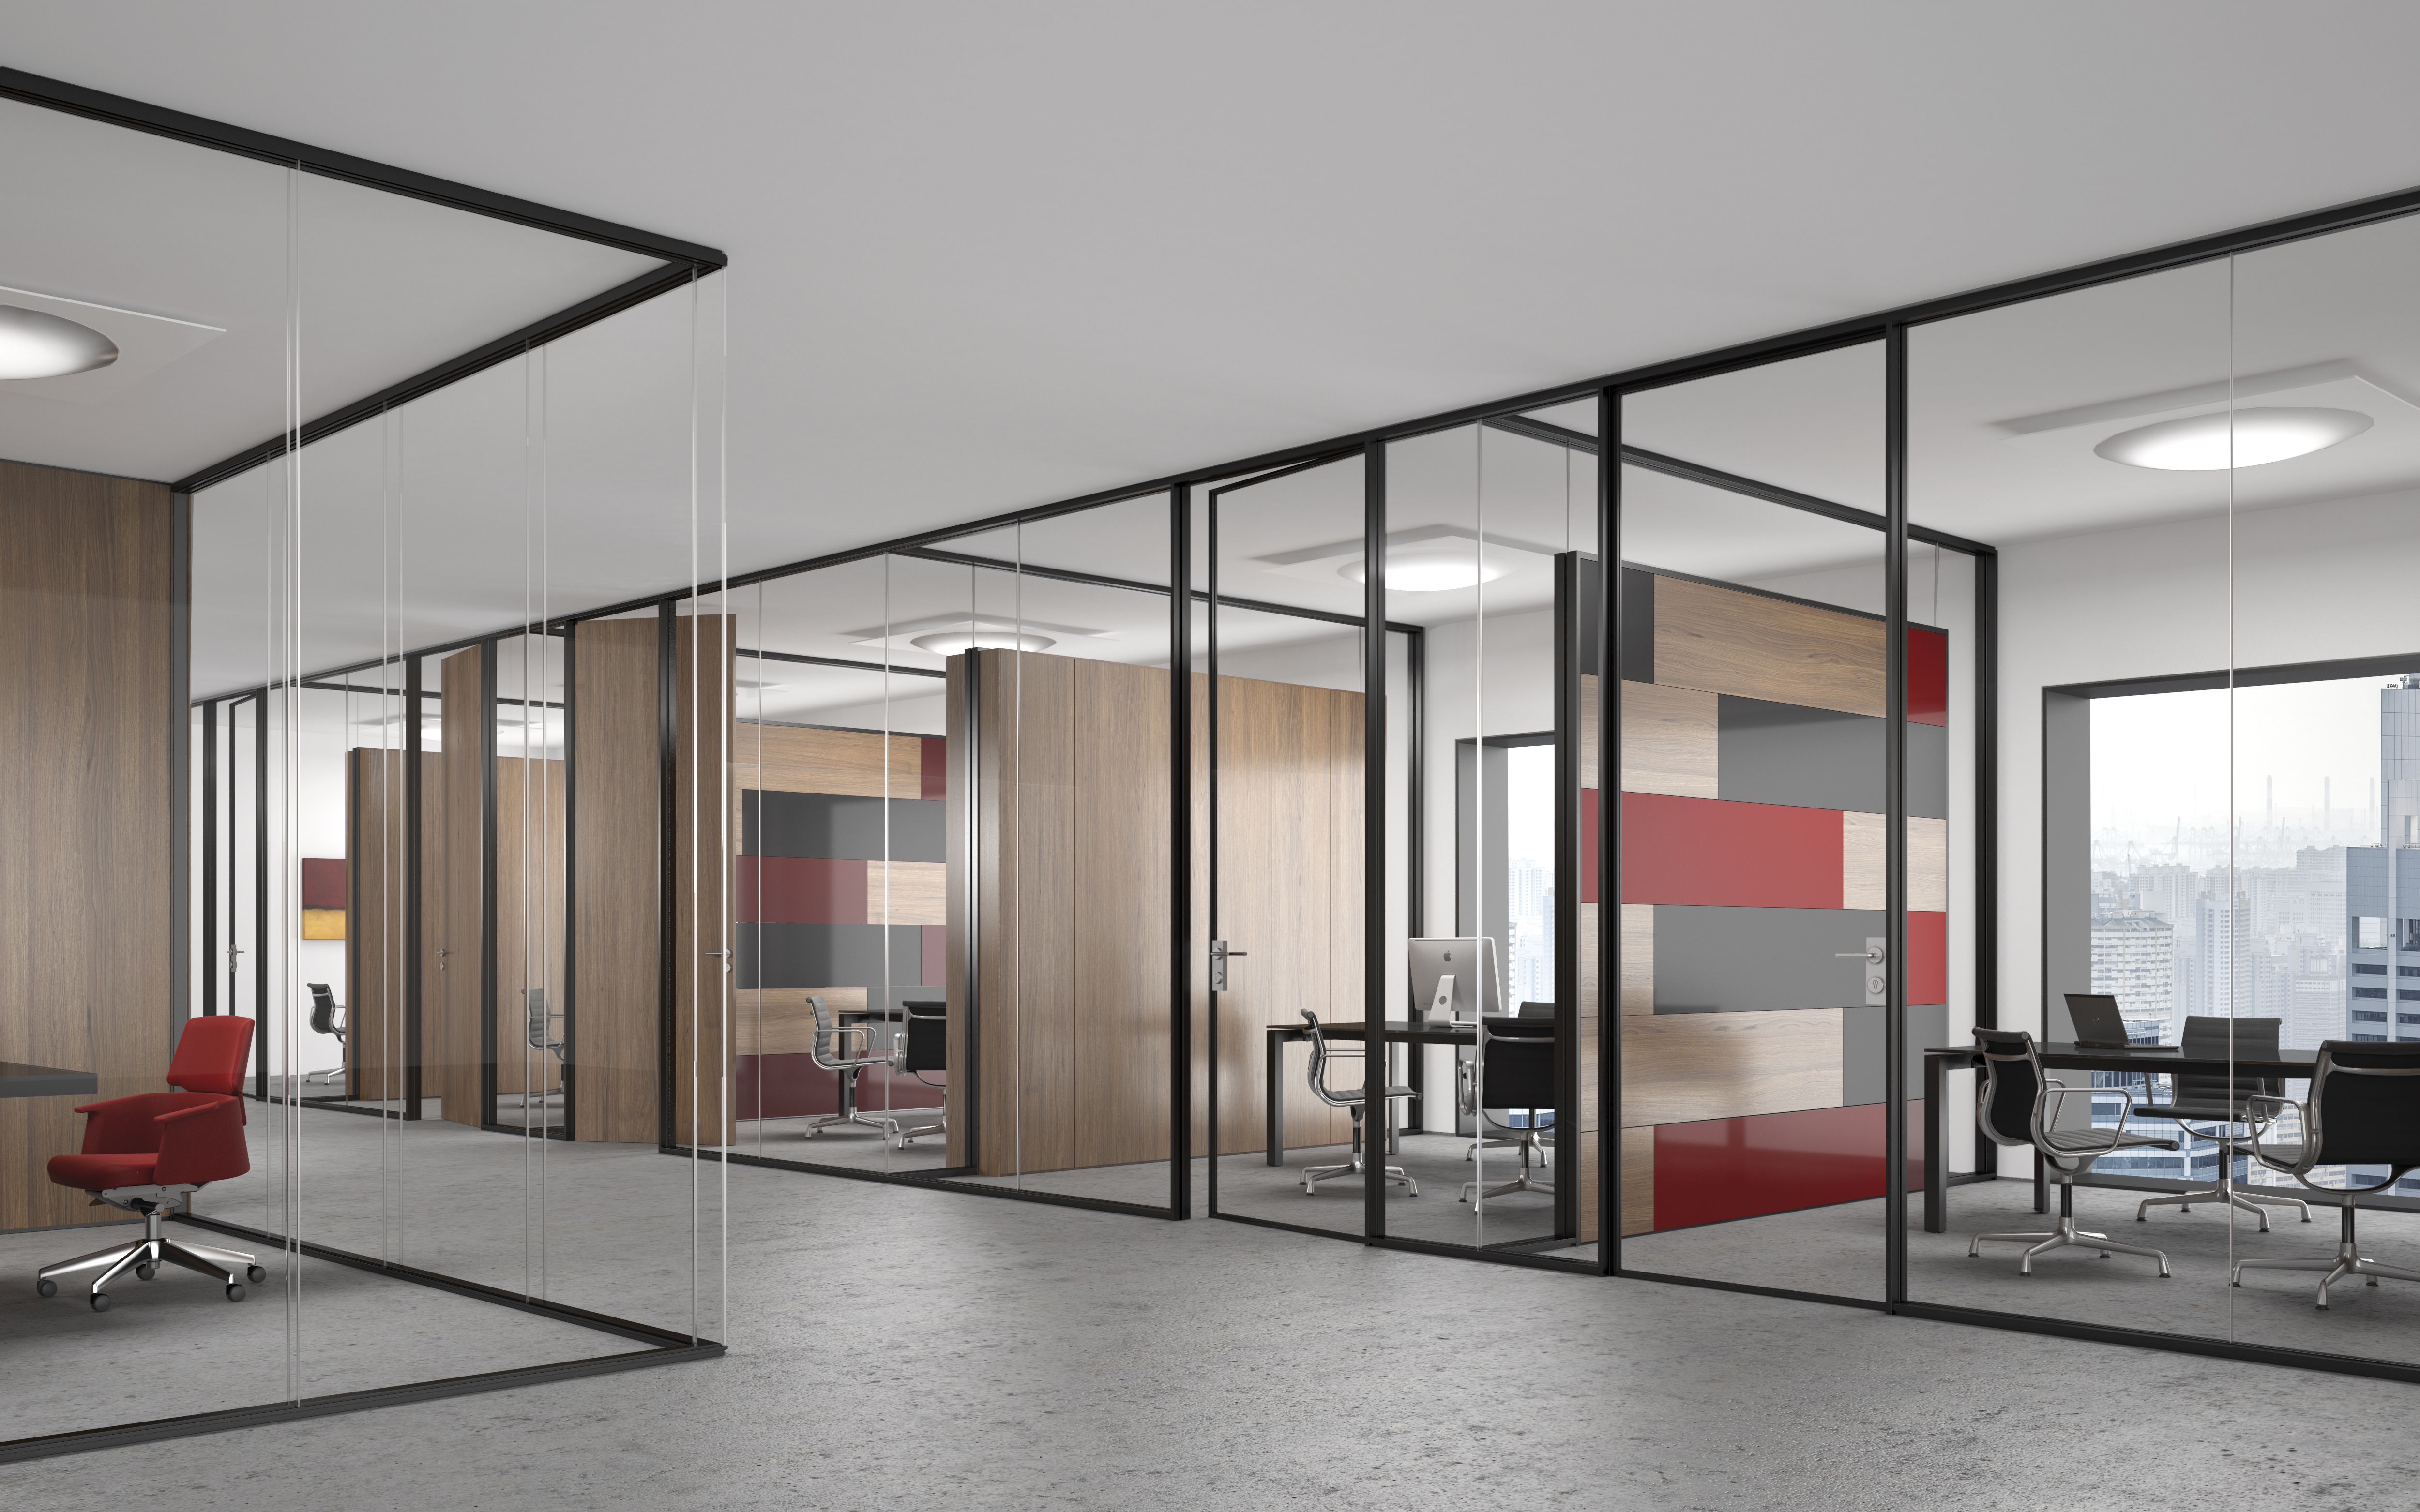 Incroyable URBAN OFFICE U003e Flat One10 | The Natural Anodized Profiles Harmonise With  The Shapes And Neutrality